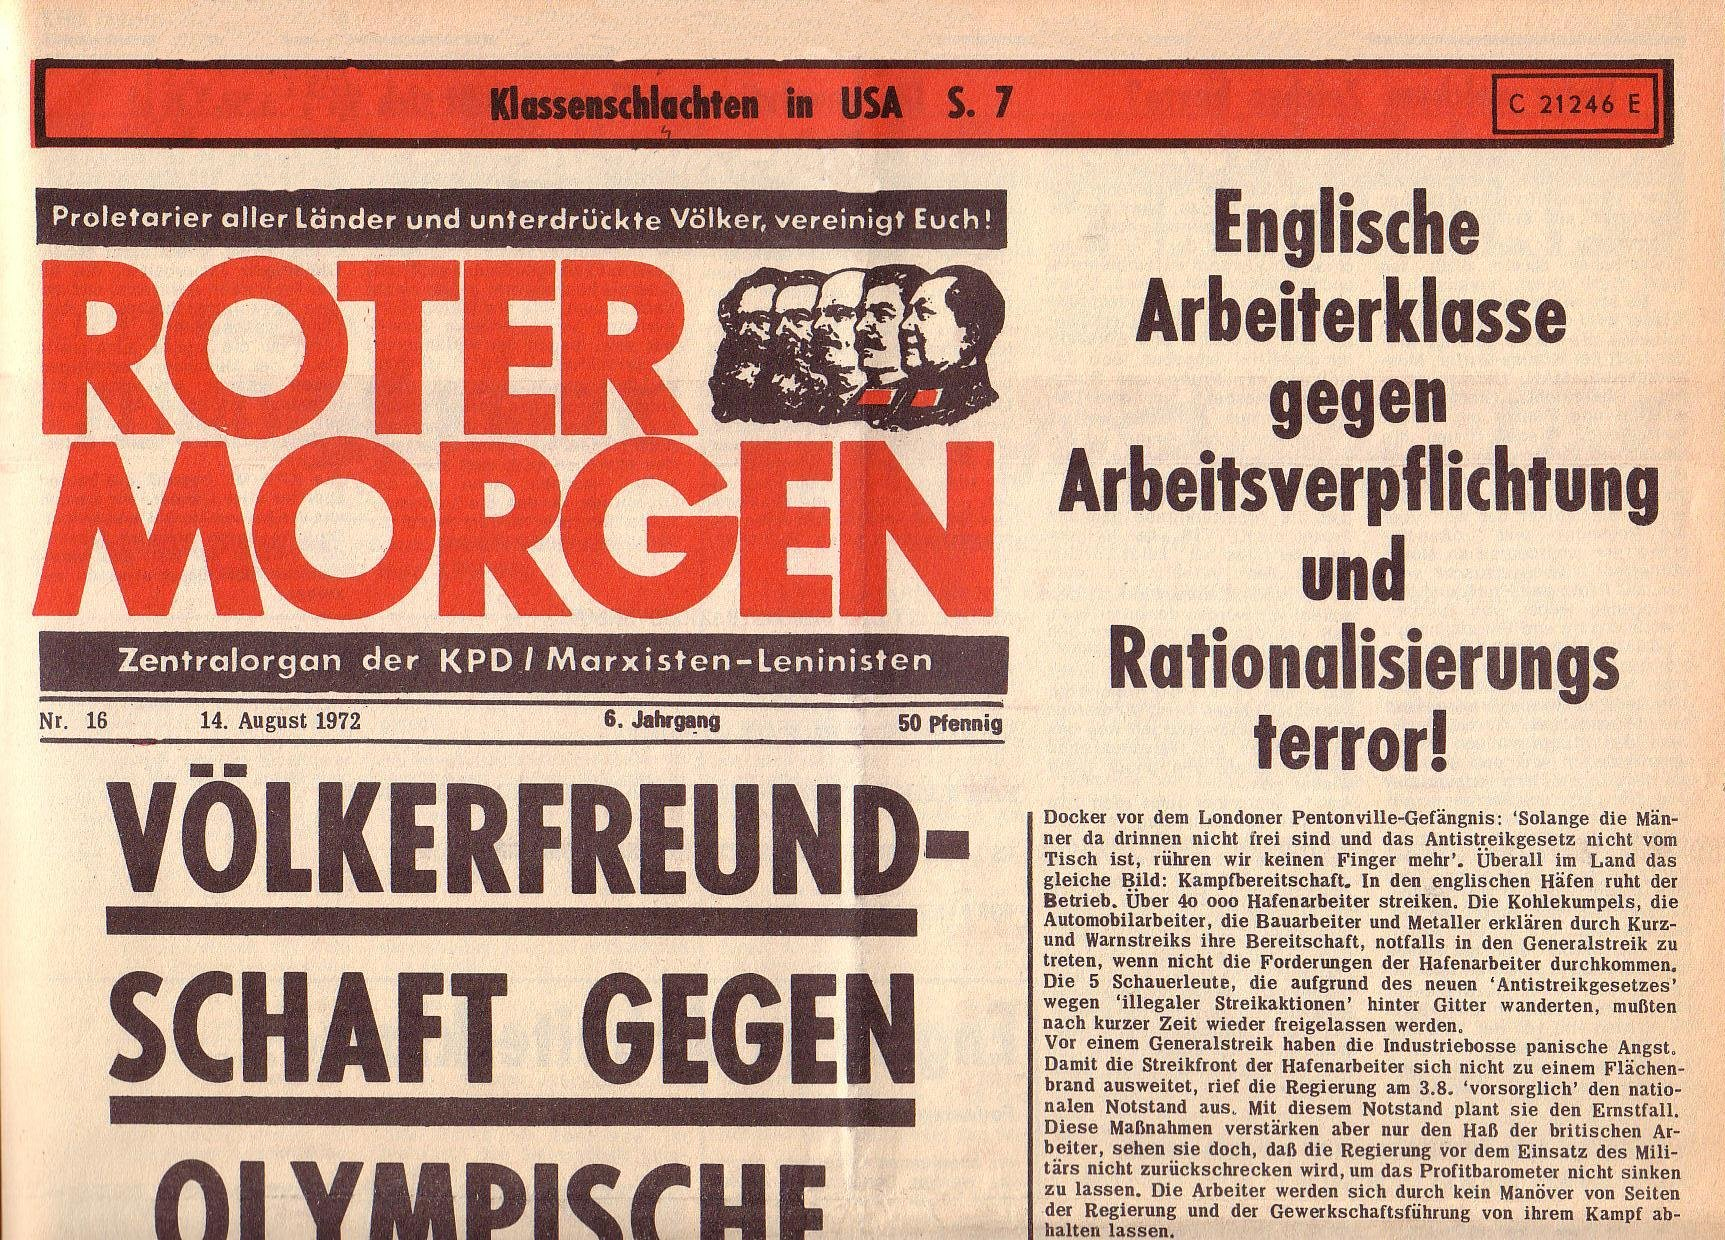 Roter Morgen, 6. Jg., 14. August 1972, Nr. 16, Seite 1a